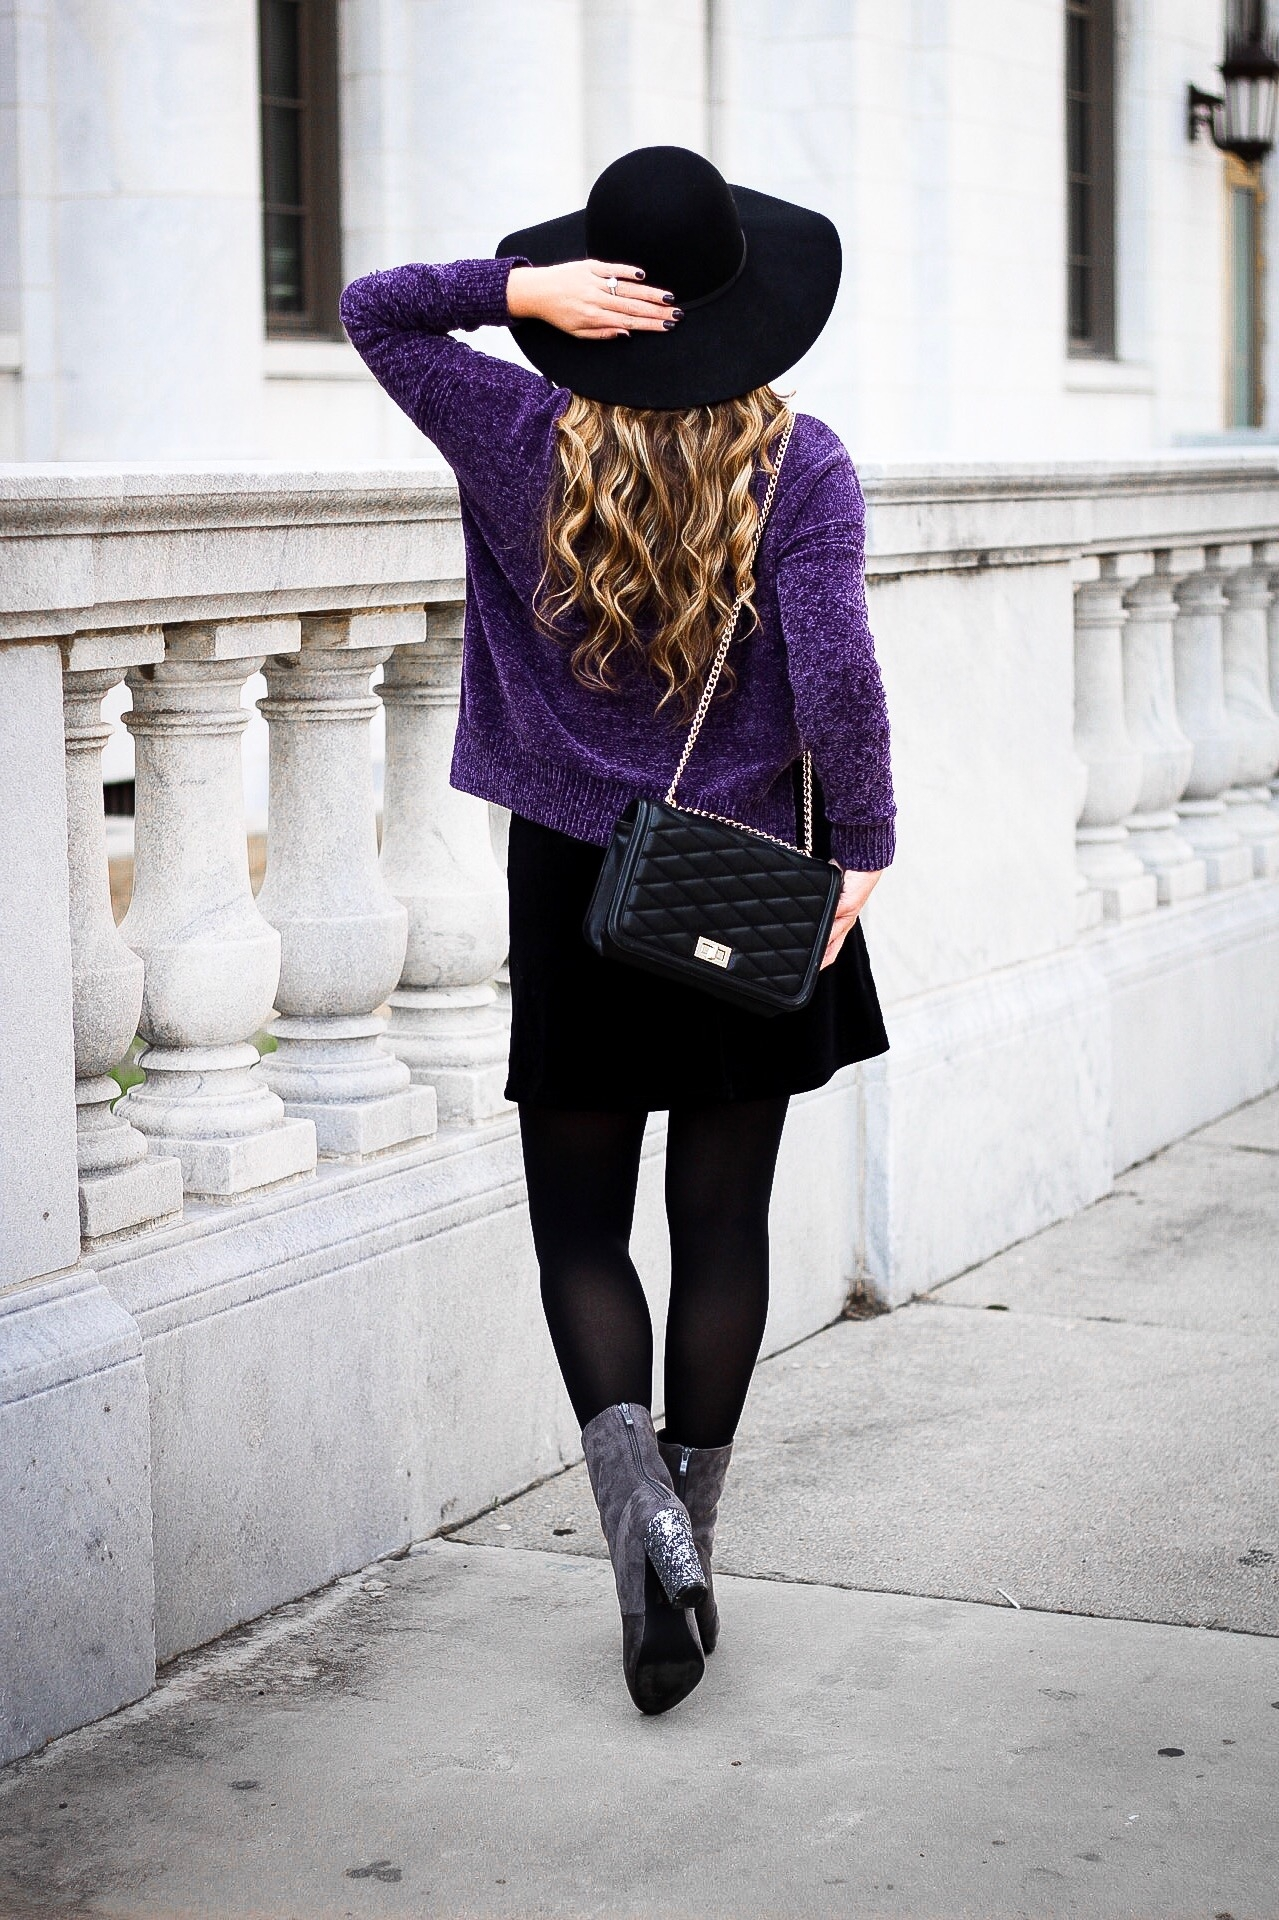 Chenille Sweater Outfit For Winter Vogue For Breakfast